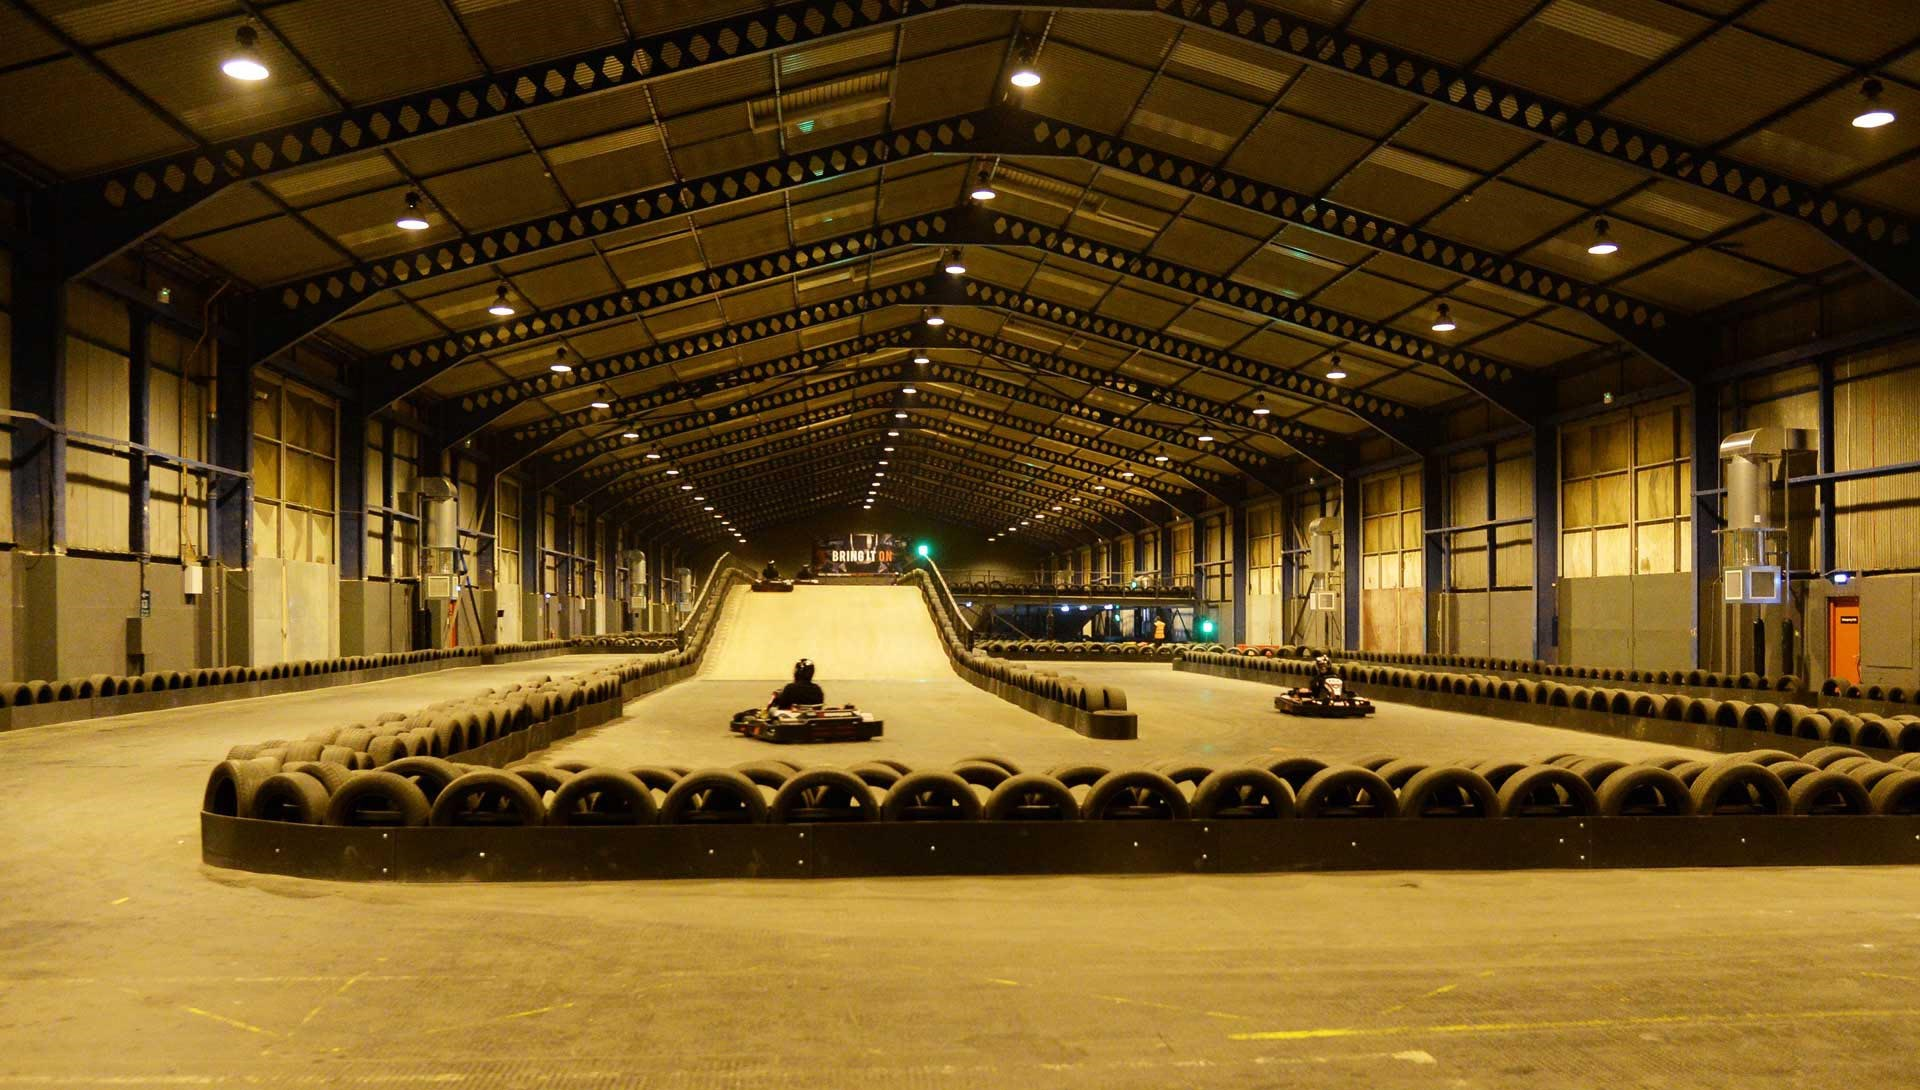 TeamSport_Main_Header_Go_Karting_Liverpool_1920x1090-min.jpg